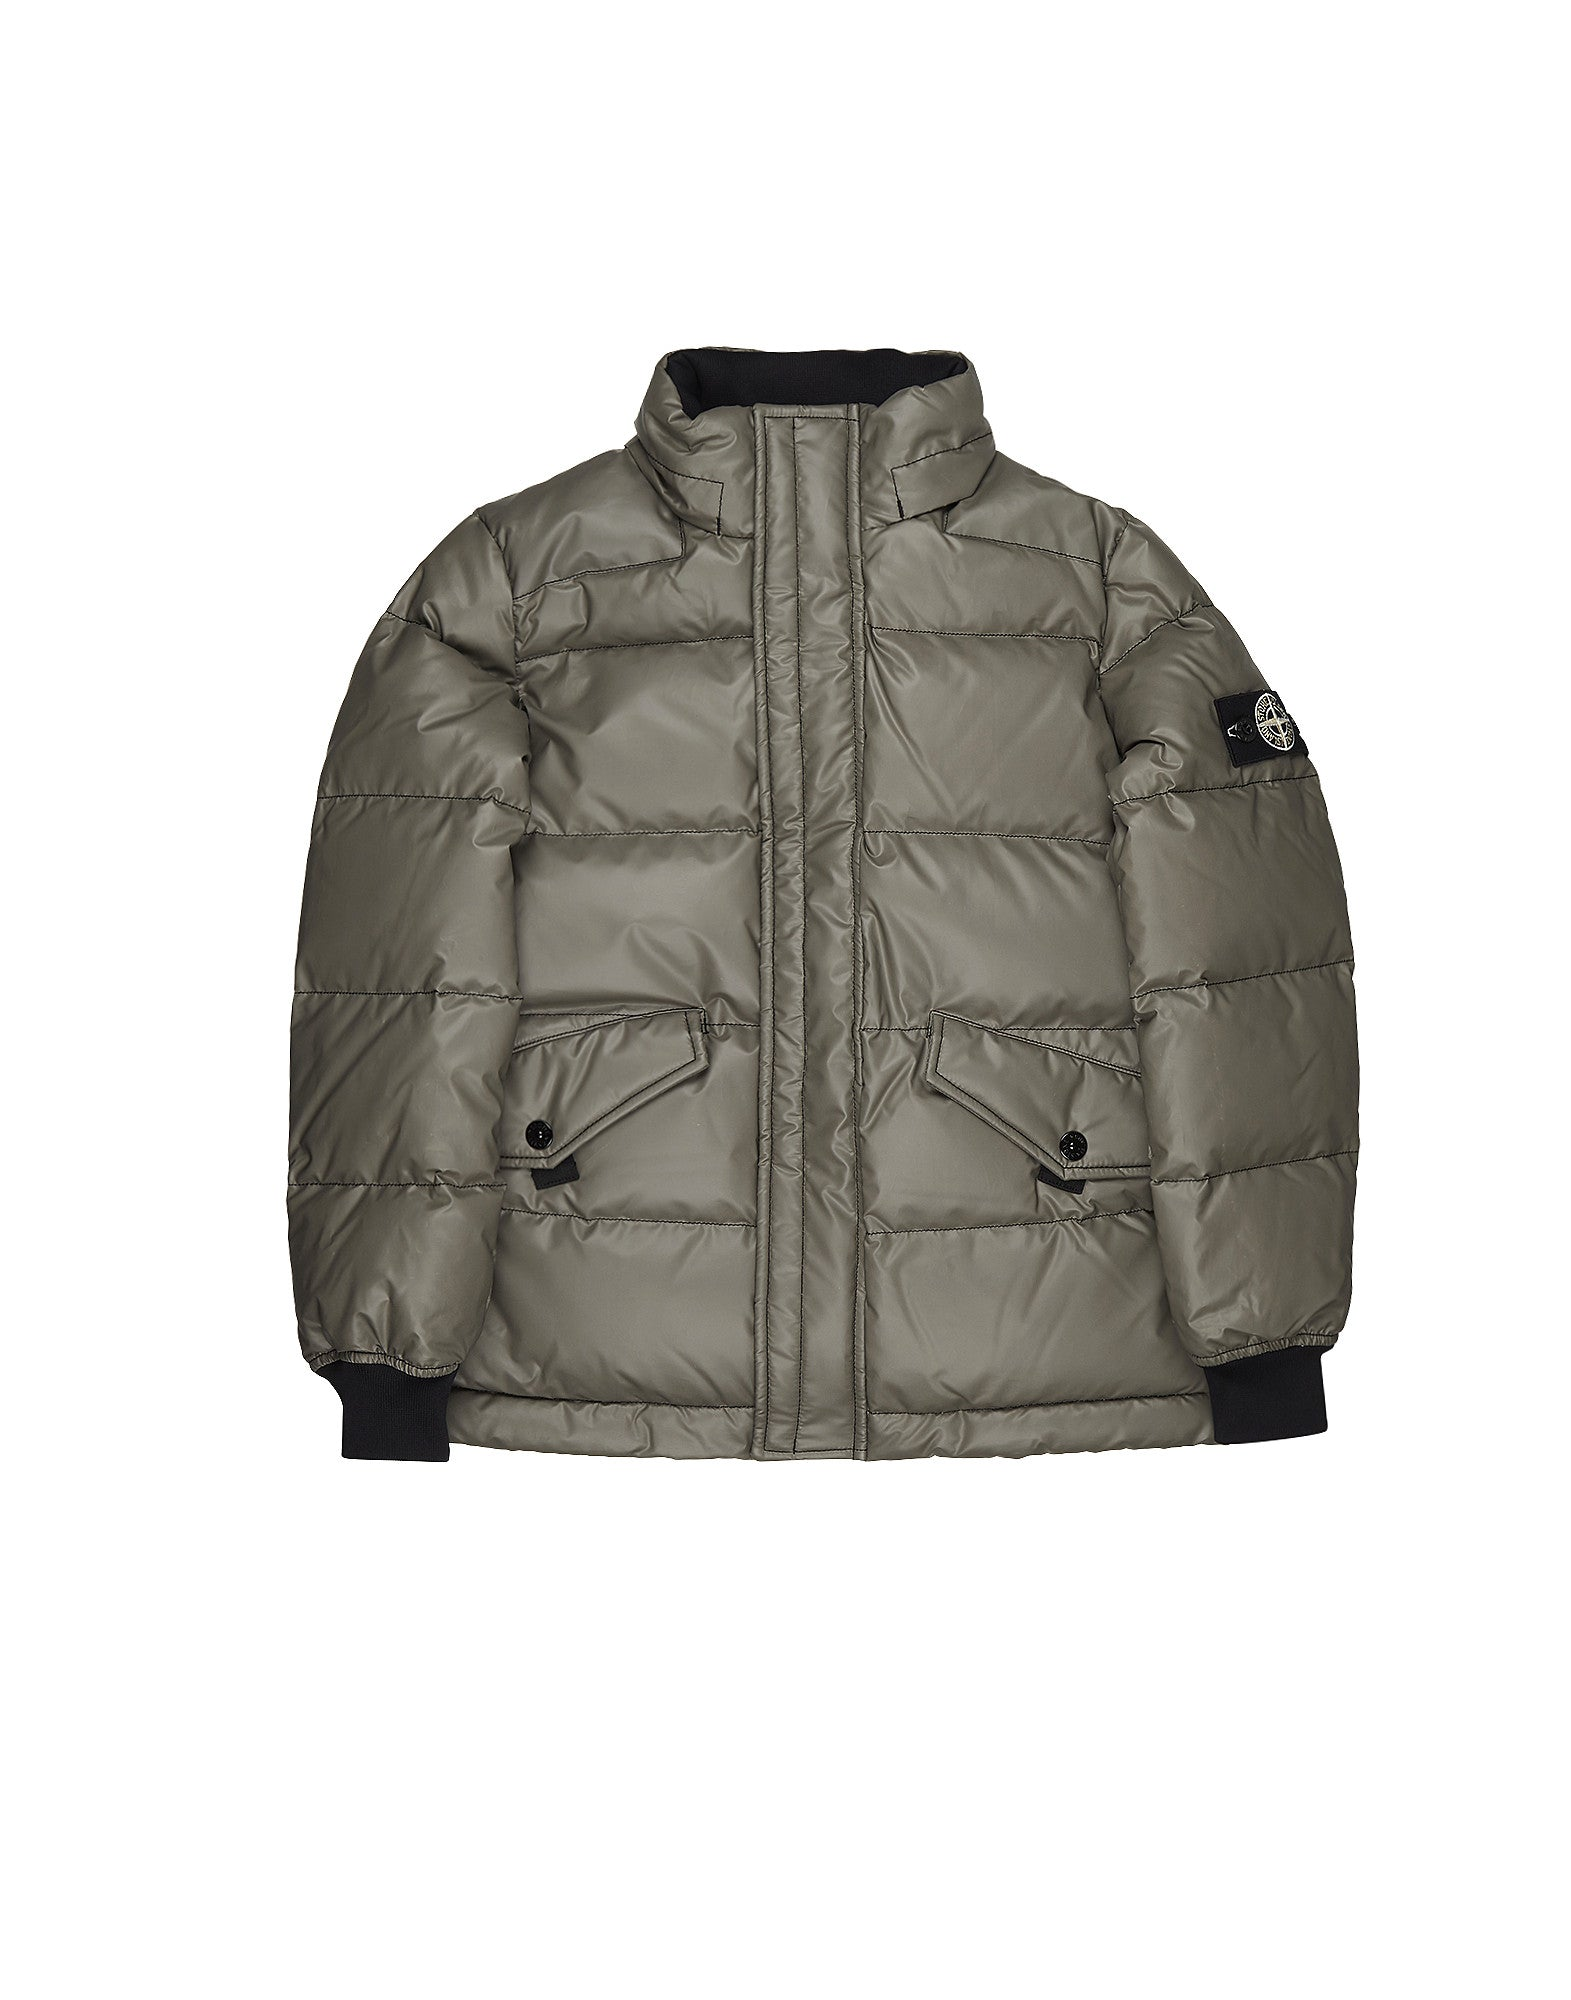 40926 ICE DOWN Jacket in Grey